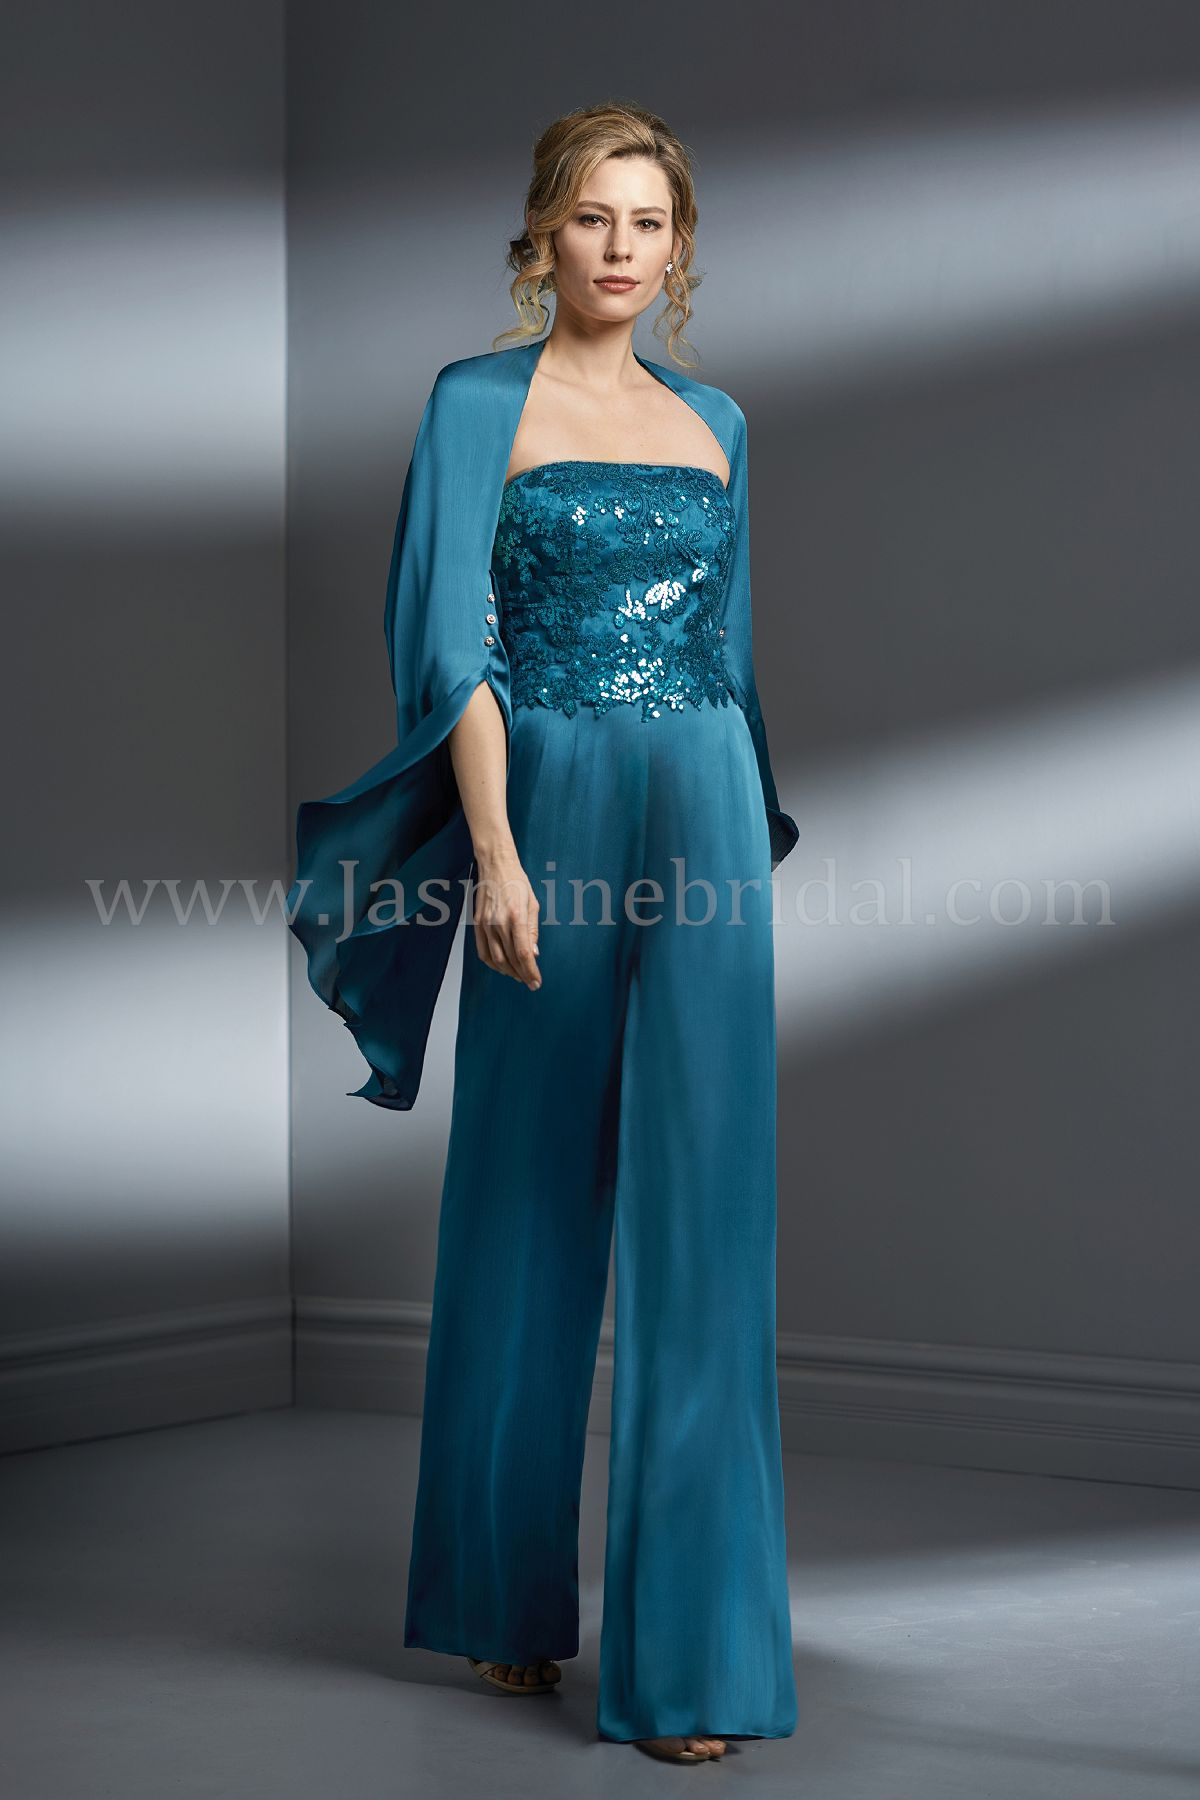 K198067 Strapless Sequin Lace Amp Satin Face Chiffon Mob Wide Leg Pant Suit With Shawl